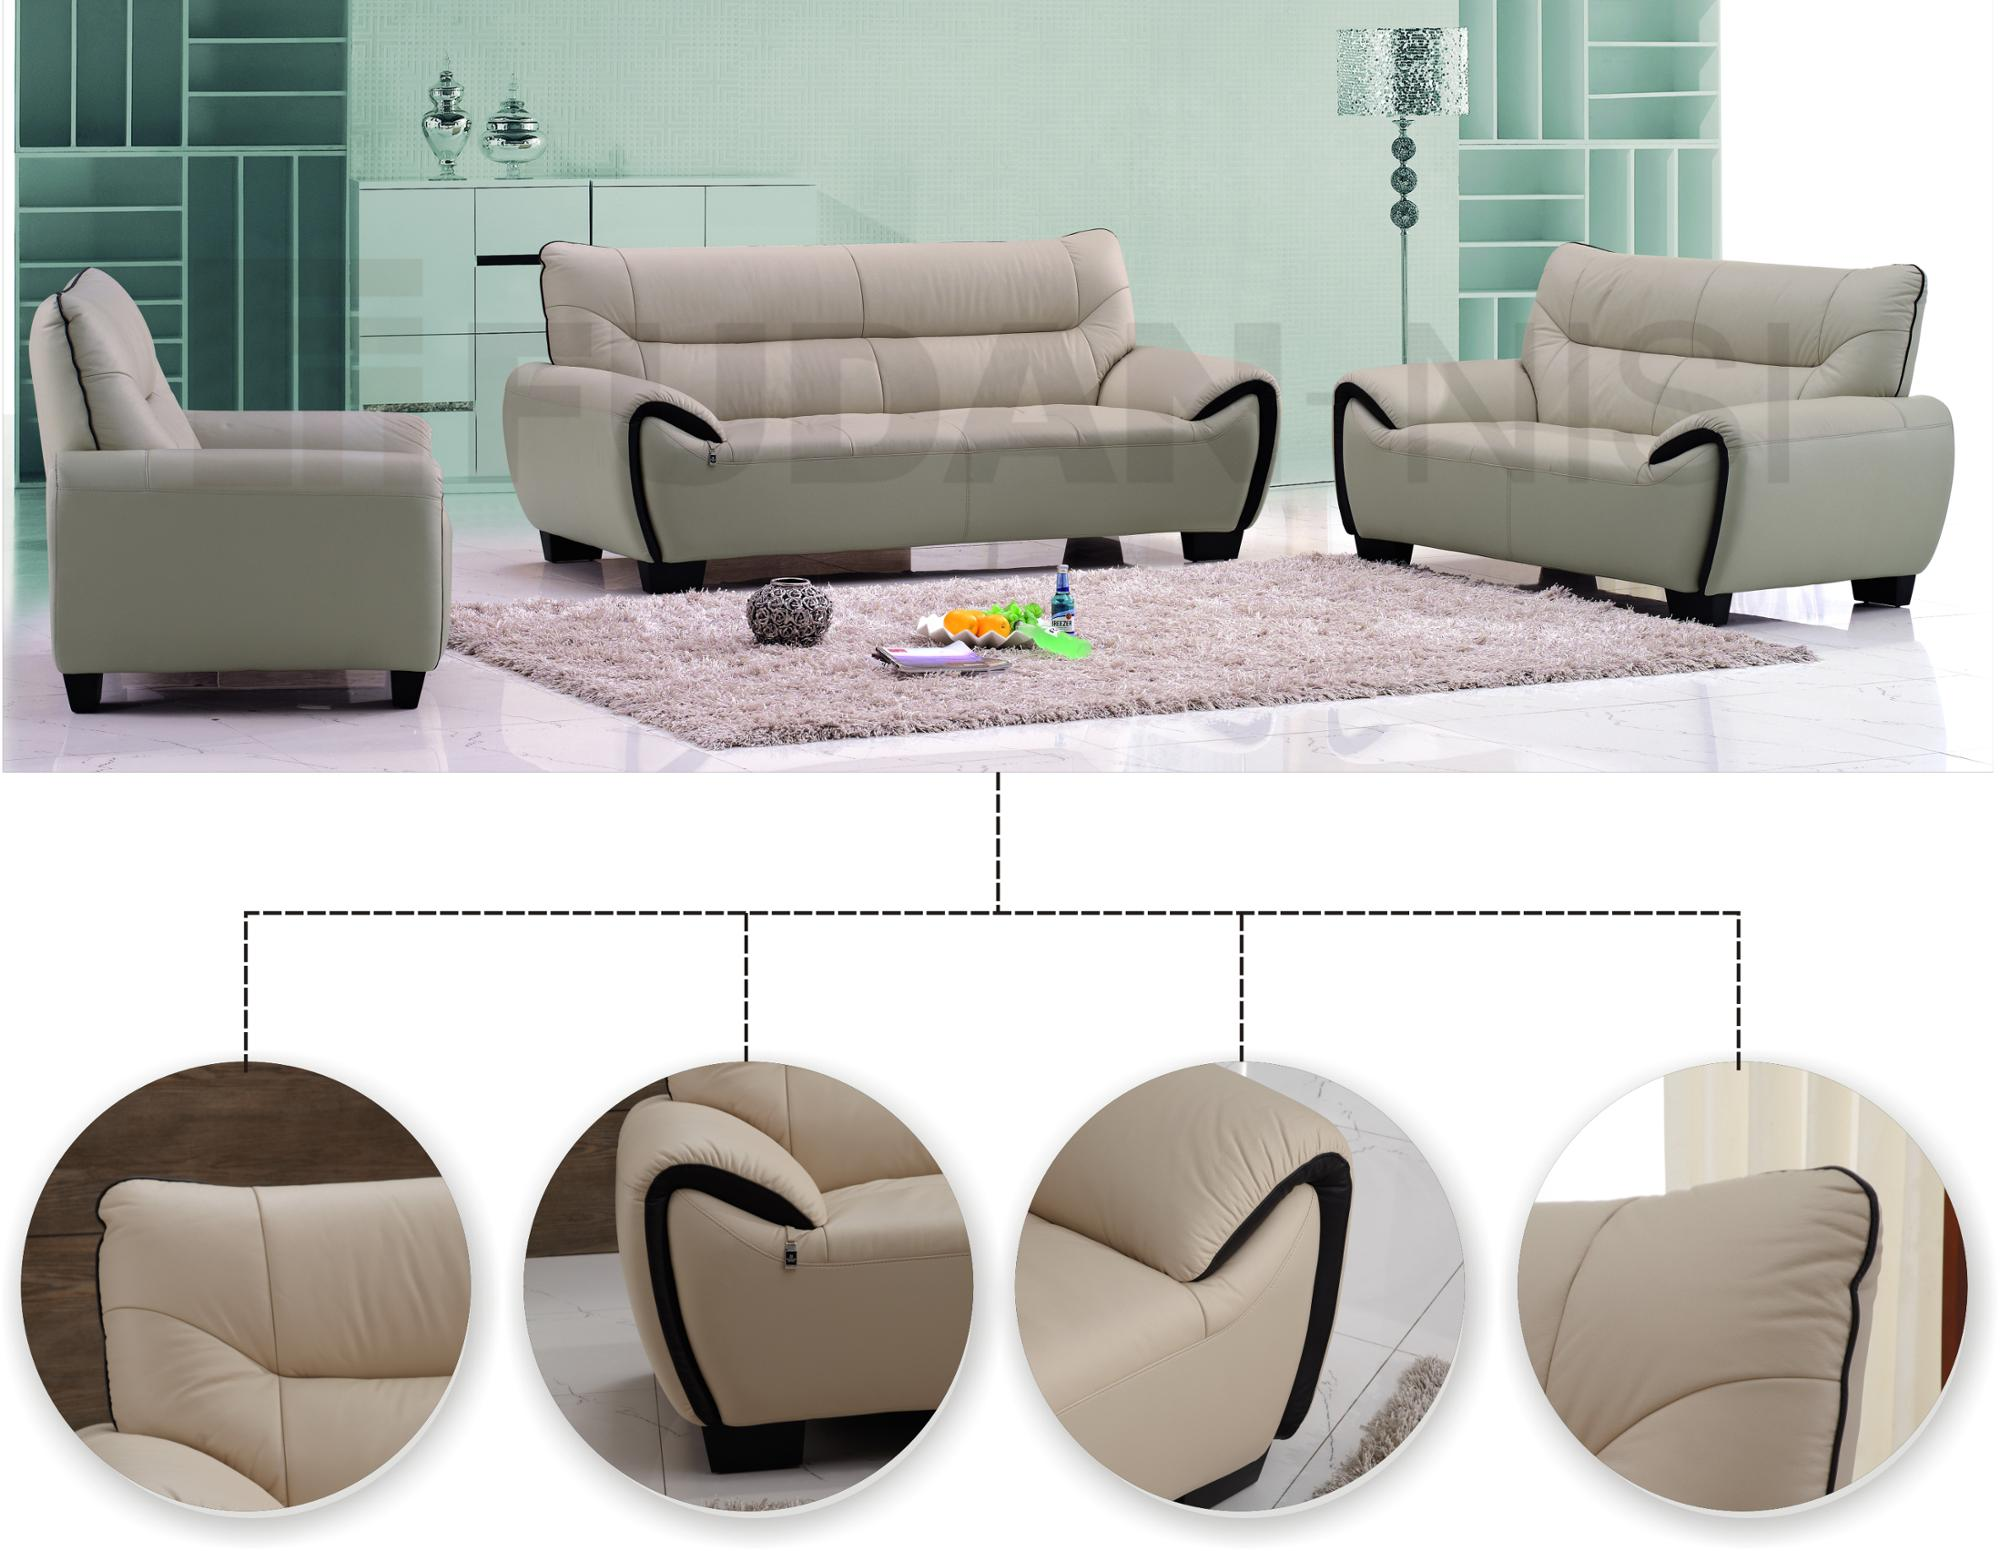 Light Colored Leather Sofas And Home Furniture For Product On Alibaba